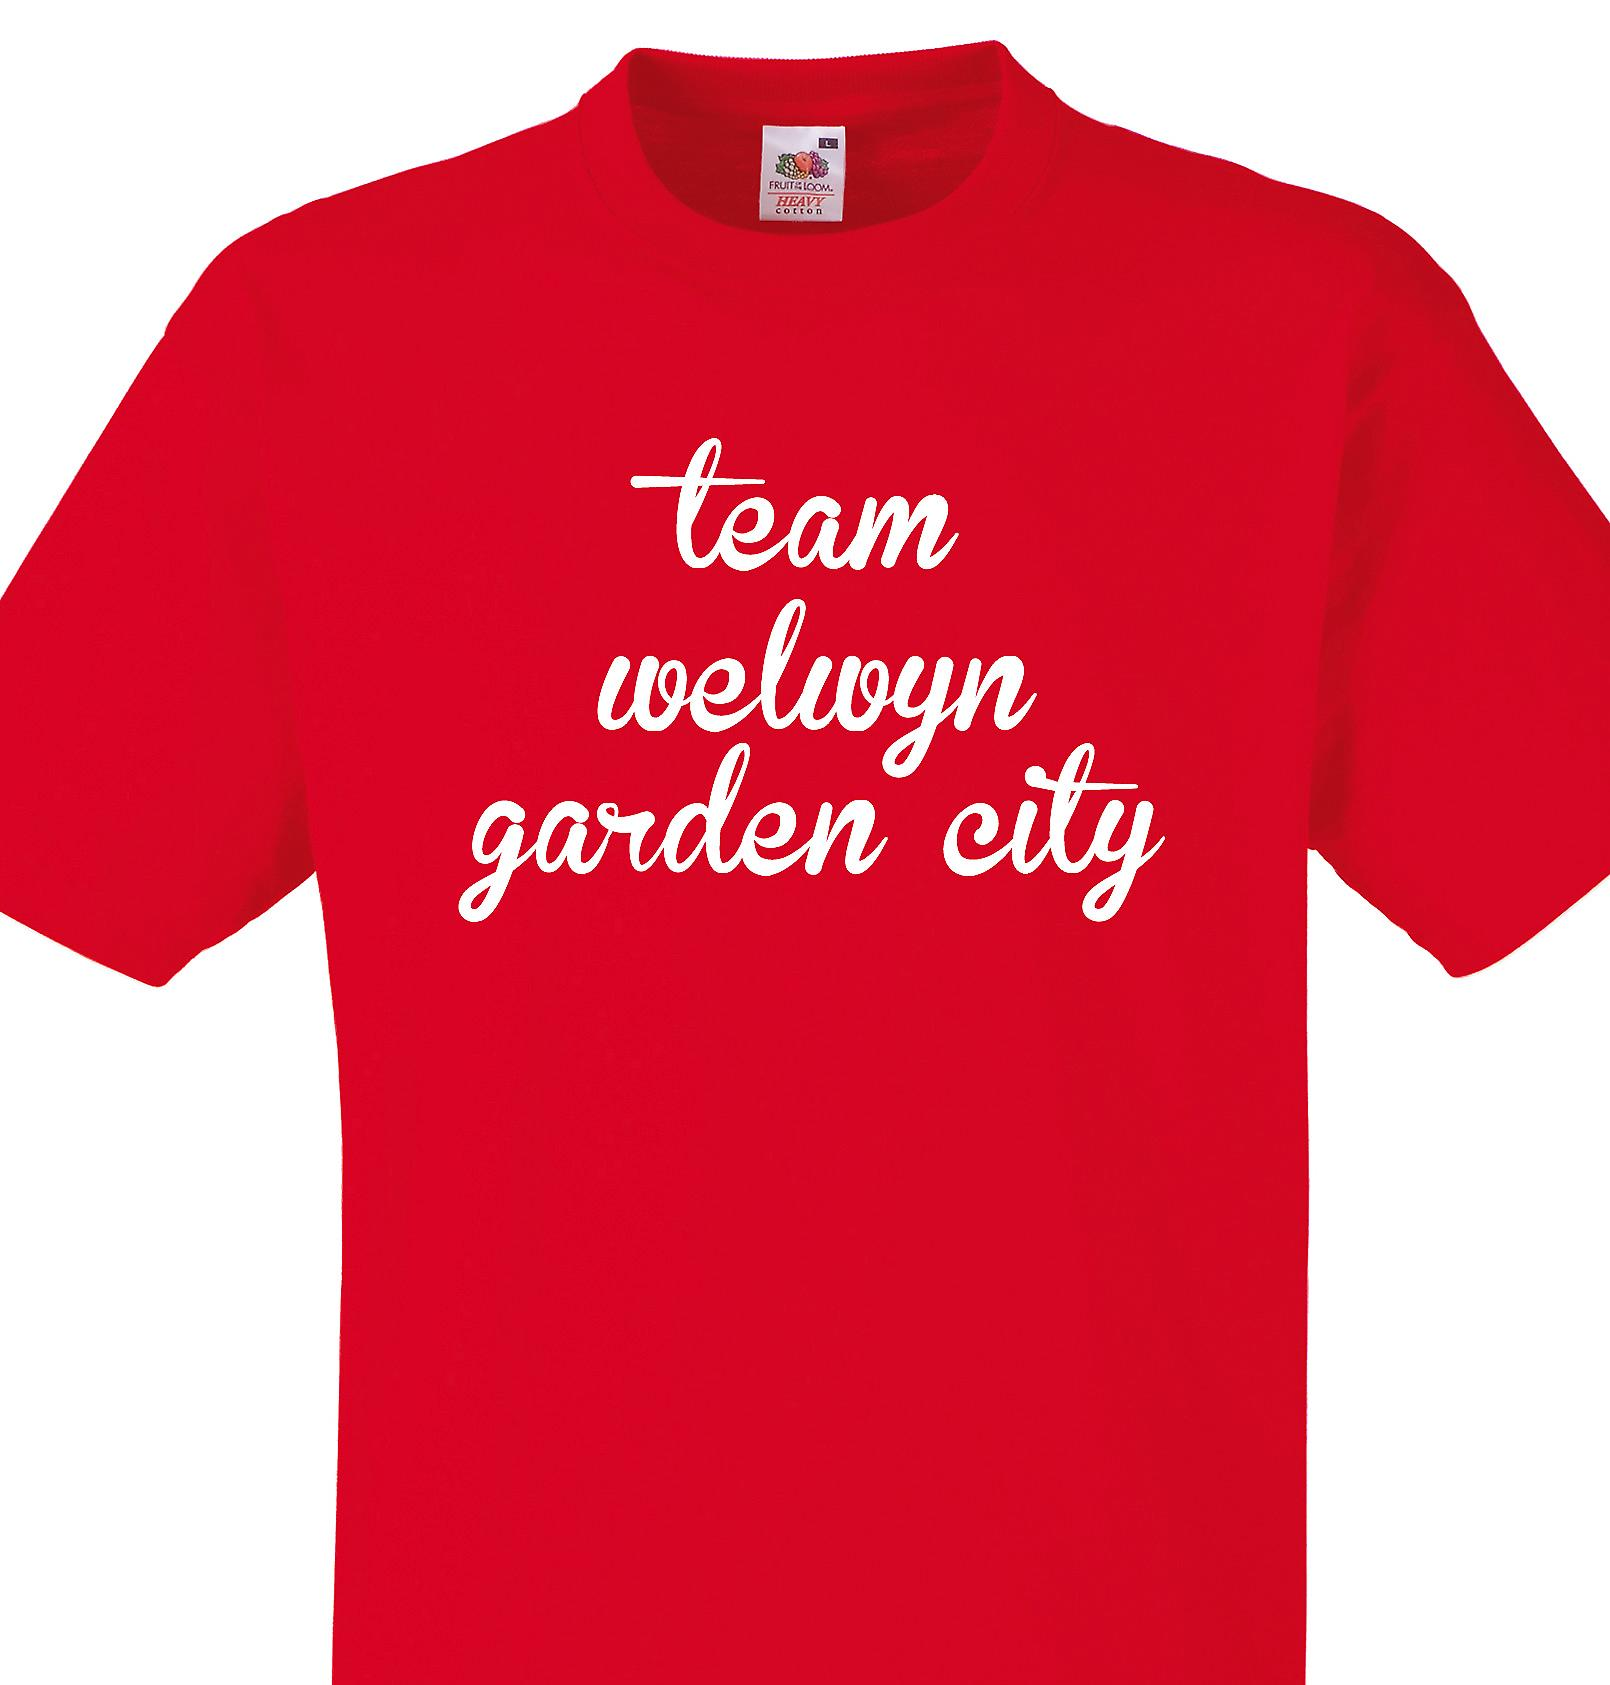 Team Welwyn garden city Red T shirt